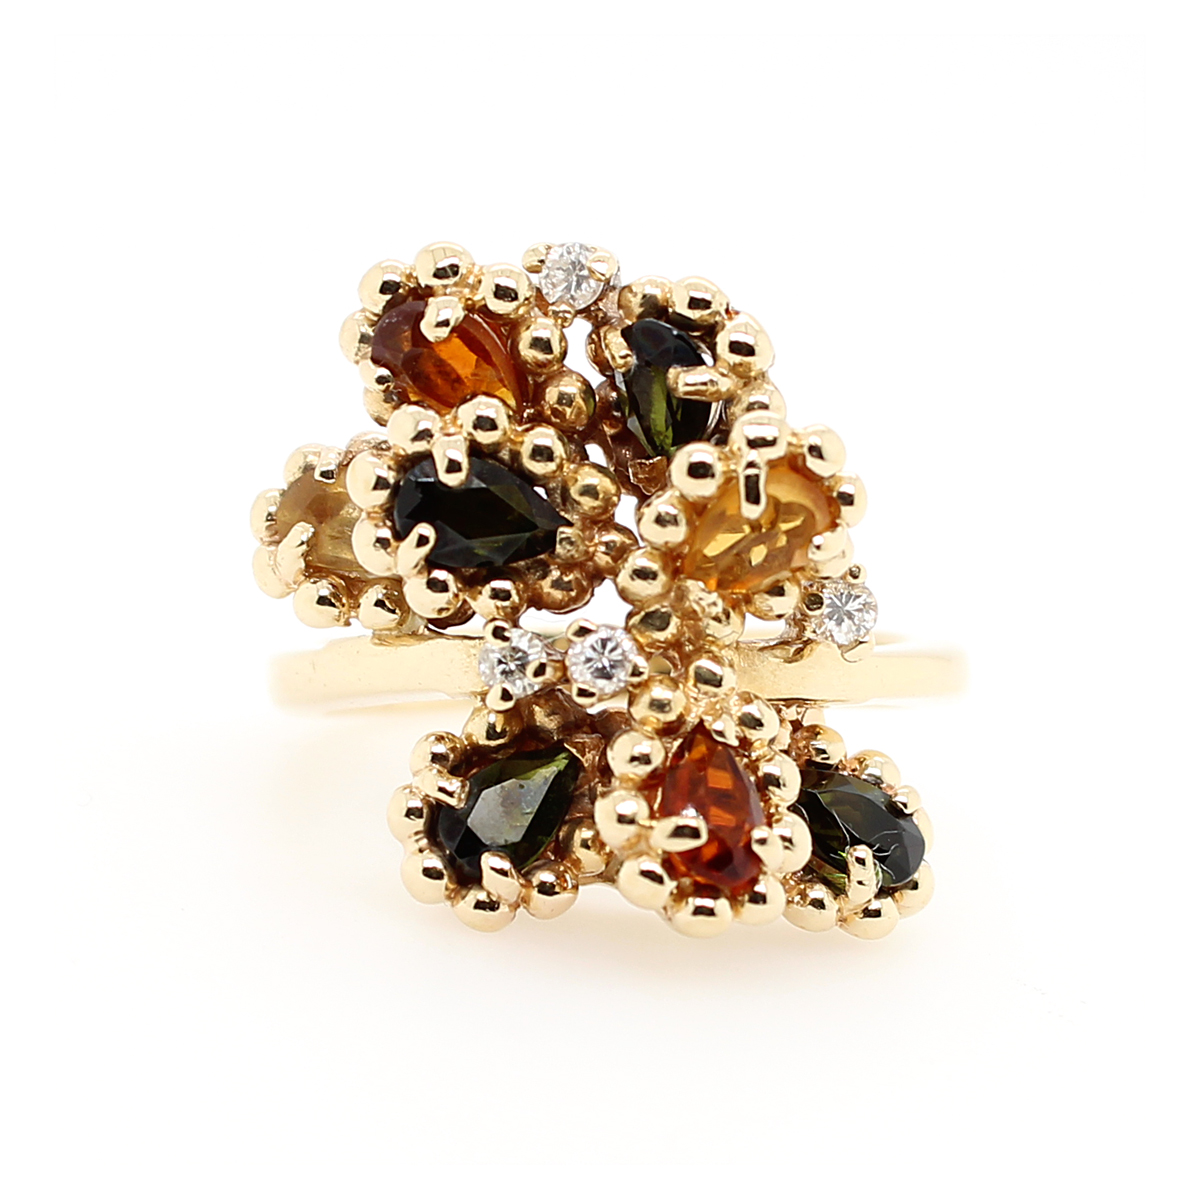 Vintage 14 Karat Yellow Gold Free Form Multi Color Stone and Diamond Ring